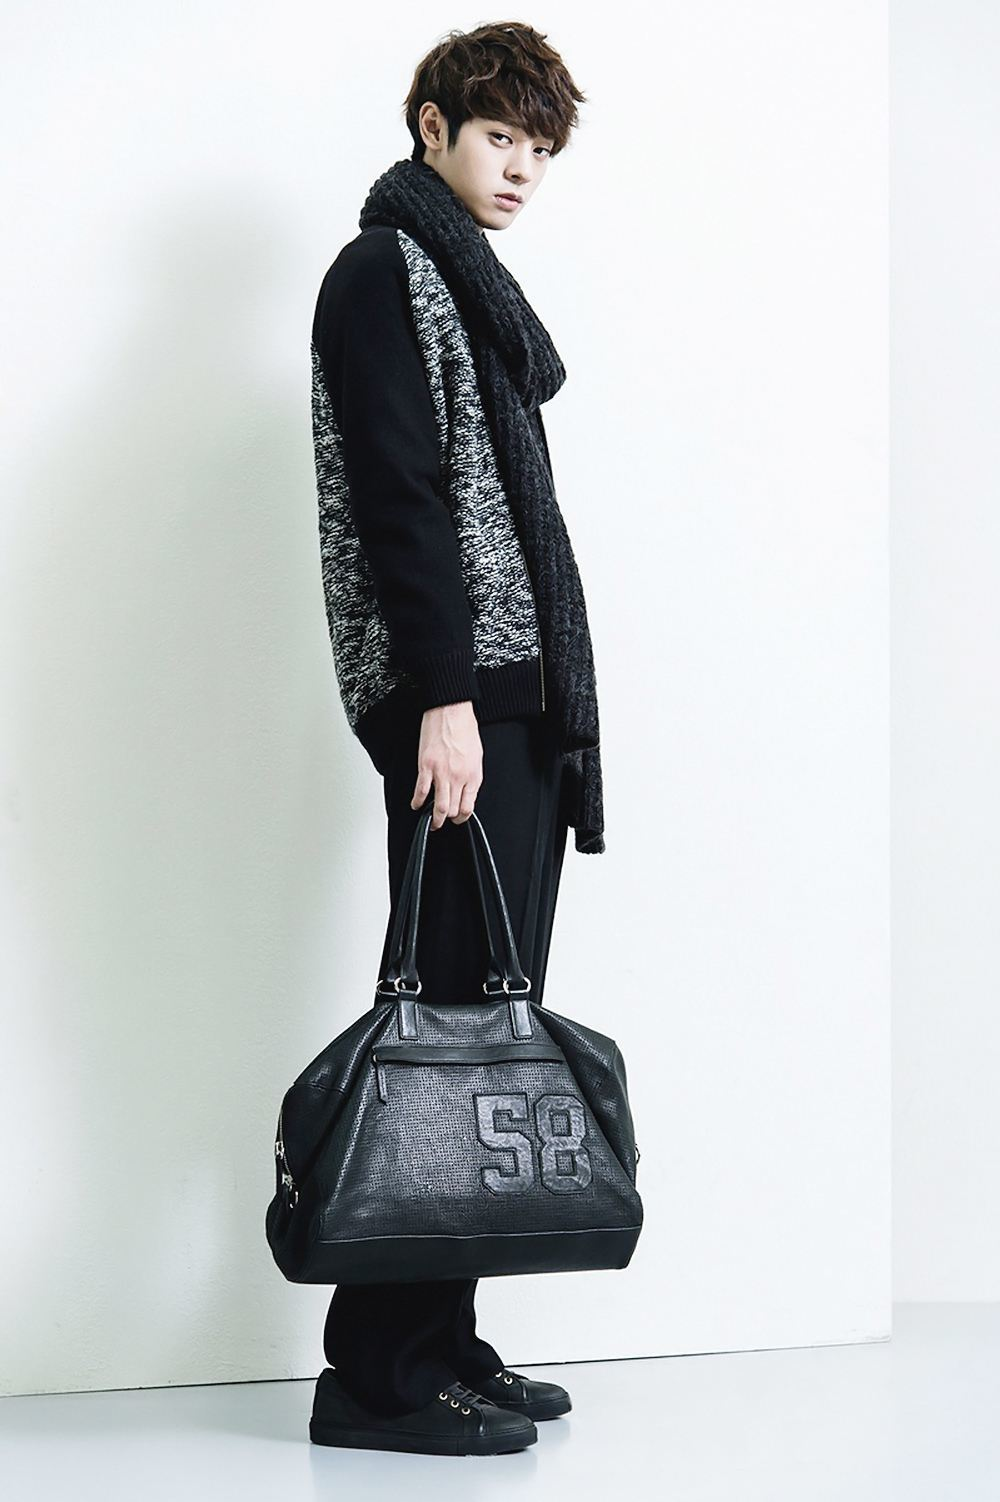 Jung Joon Young for Siero